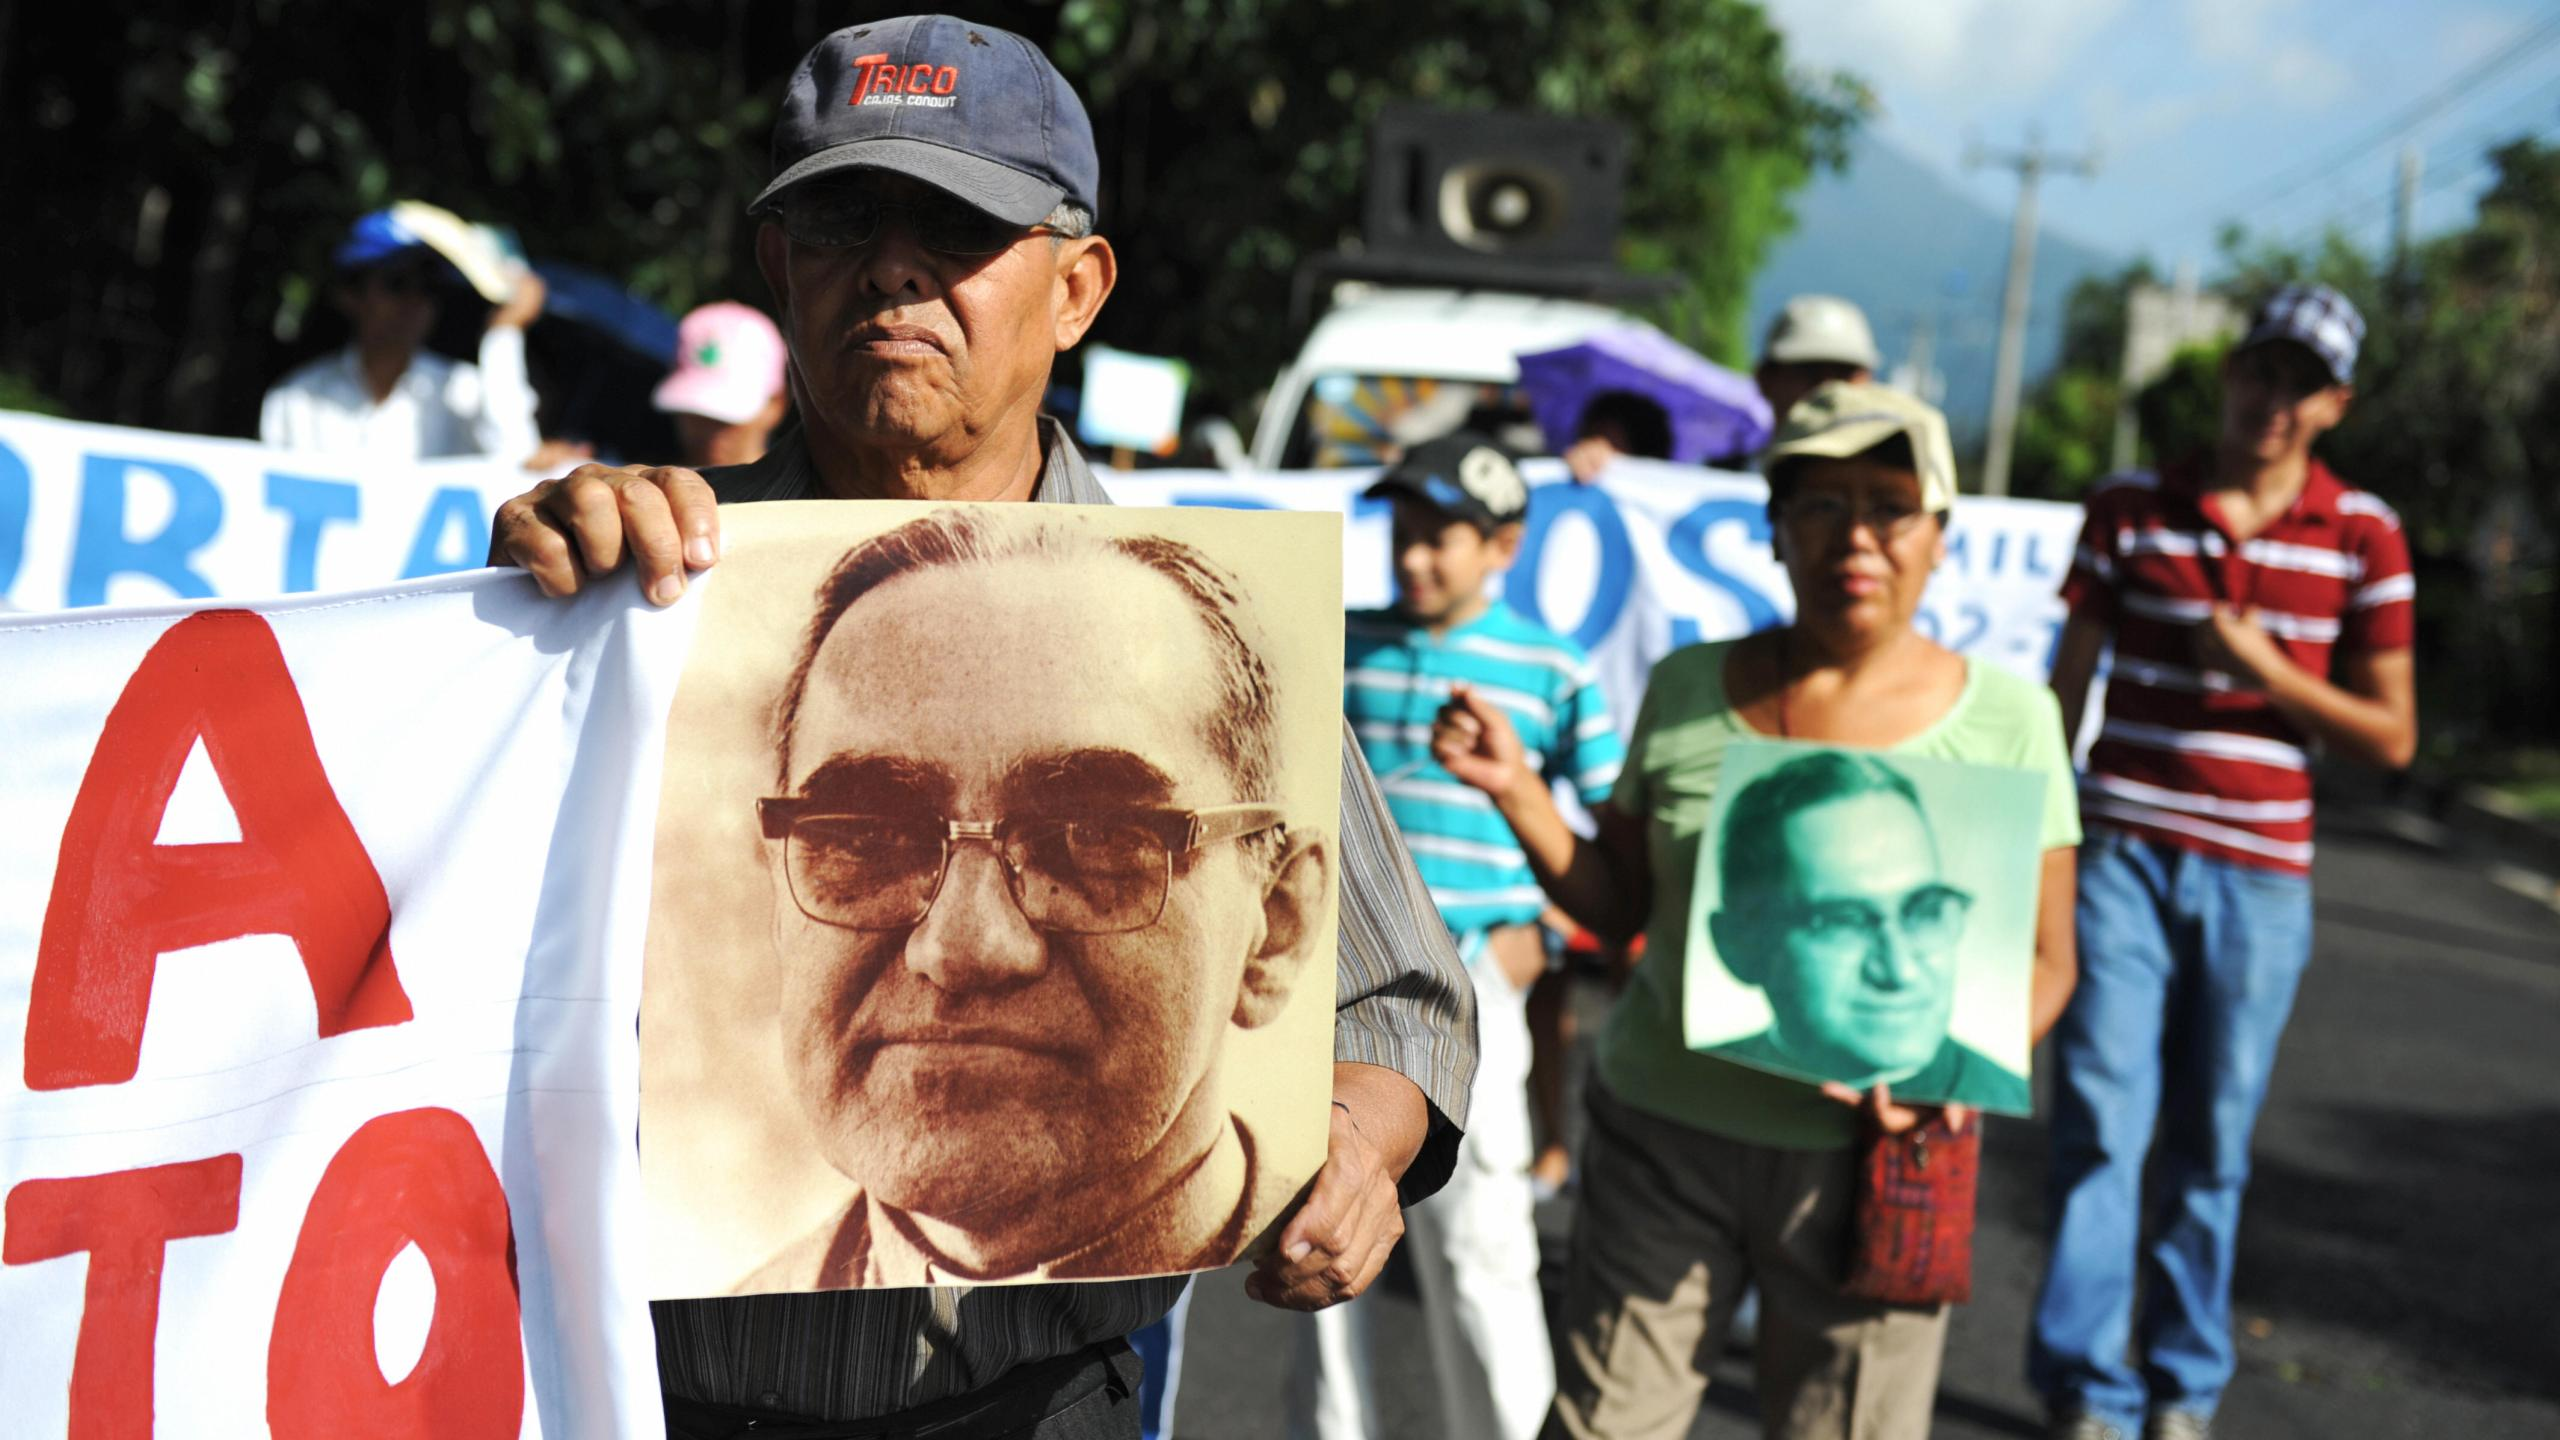 Catholic faithfuls participate in a march to celebrate the 92nd birthday of the late archbishop of San Salvador, Oscar Arnulfo Romero, carrying signs and pictures portraying him, in San Salvador on Aug. 15, 2009.(Credit: Jose CABEZAS/AFP/Getty Images)